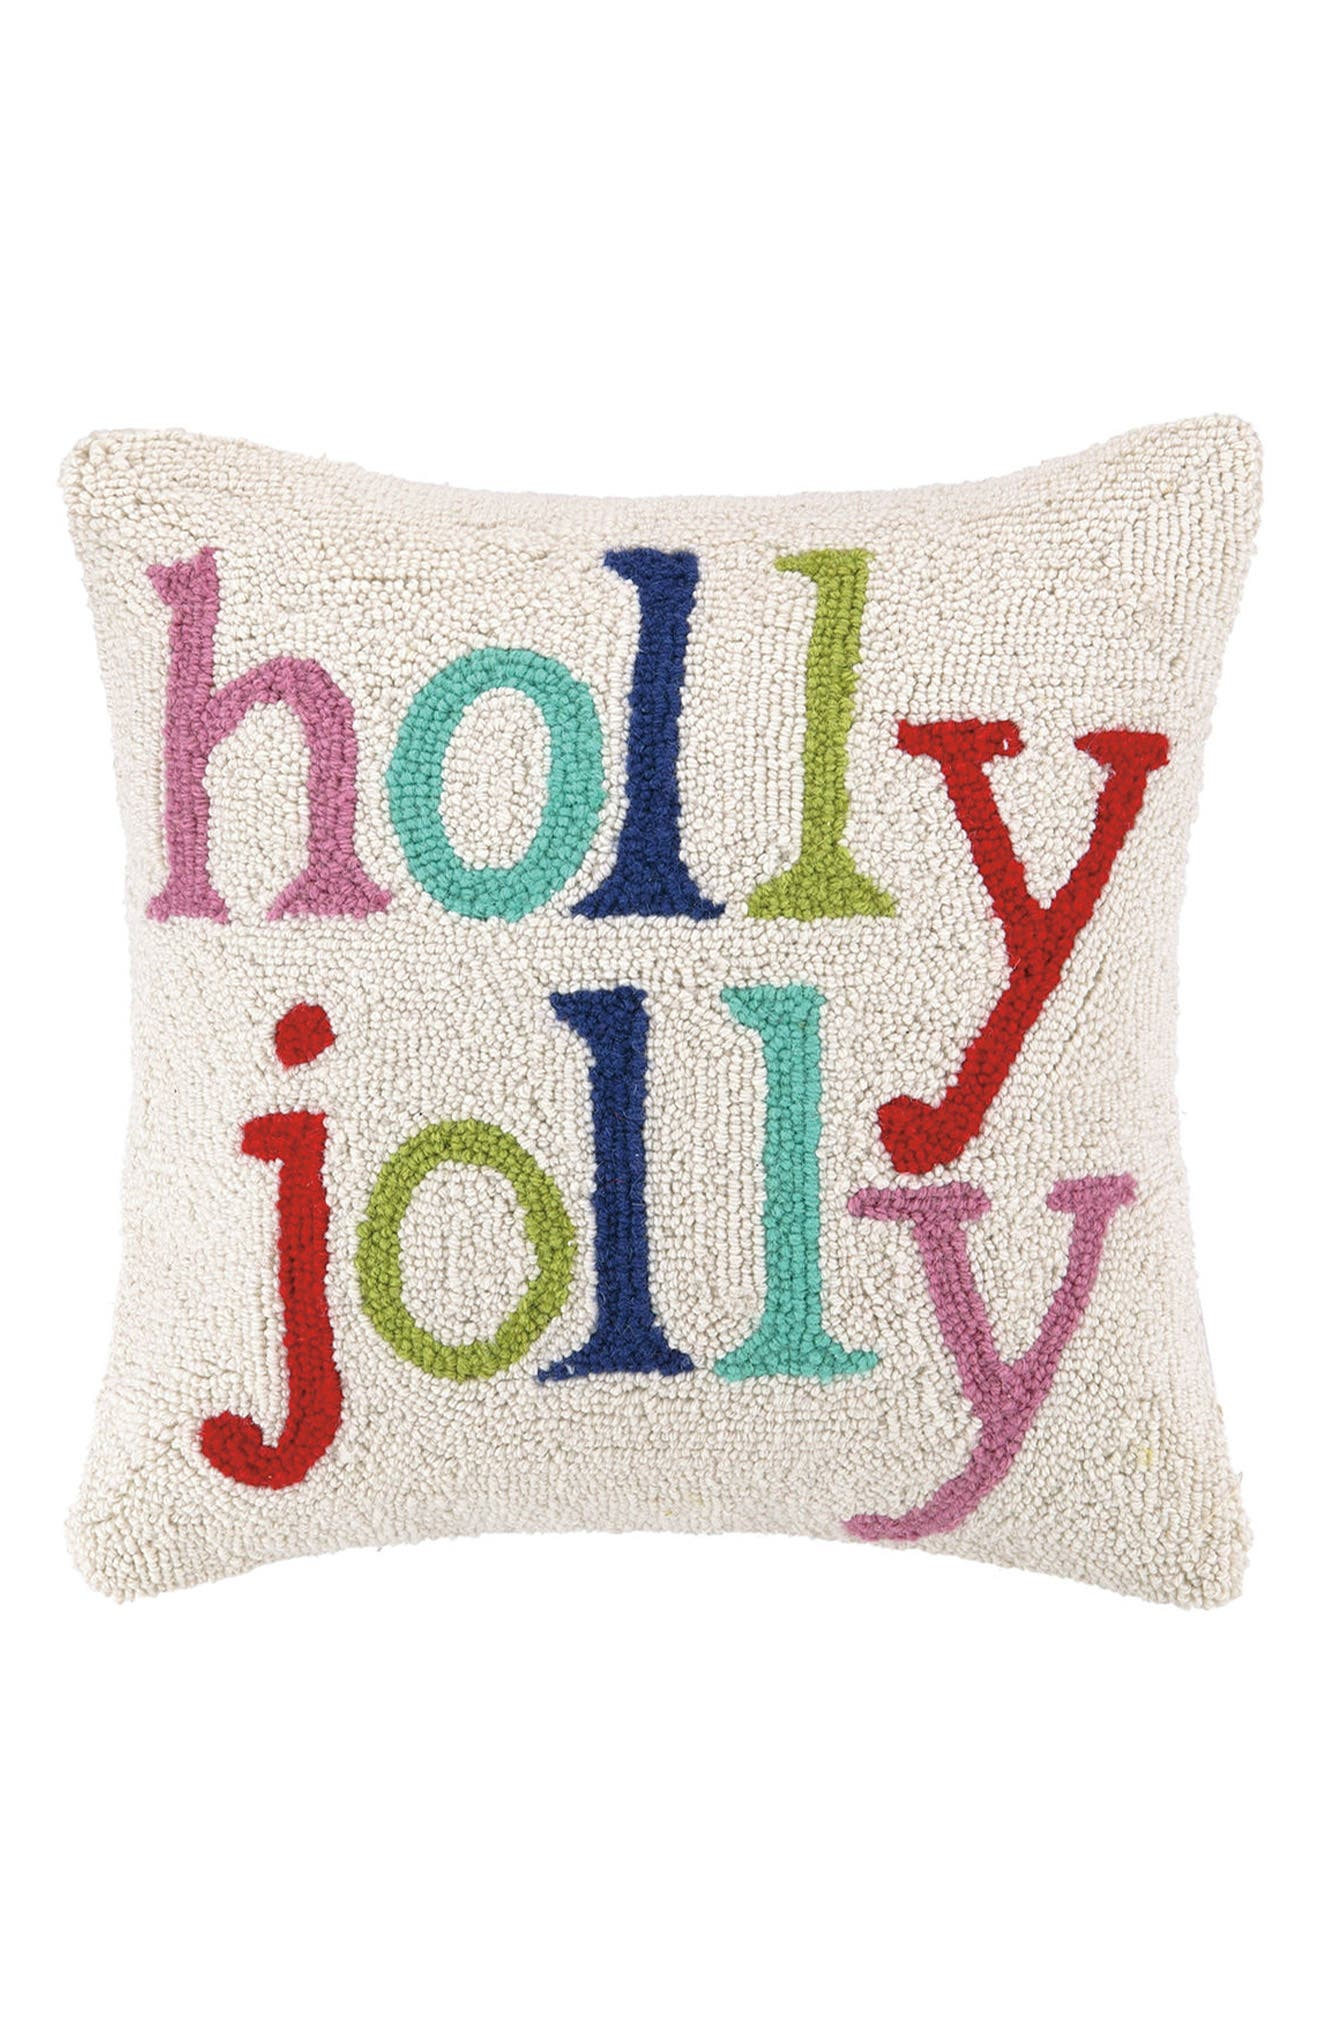 Holly Jolly Hooked Accent Pillow,                             Main thumbnail 1, color,                             900